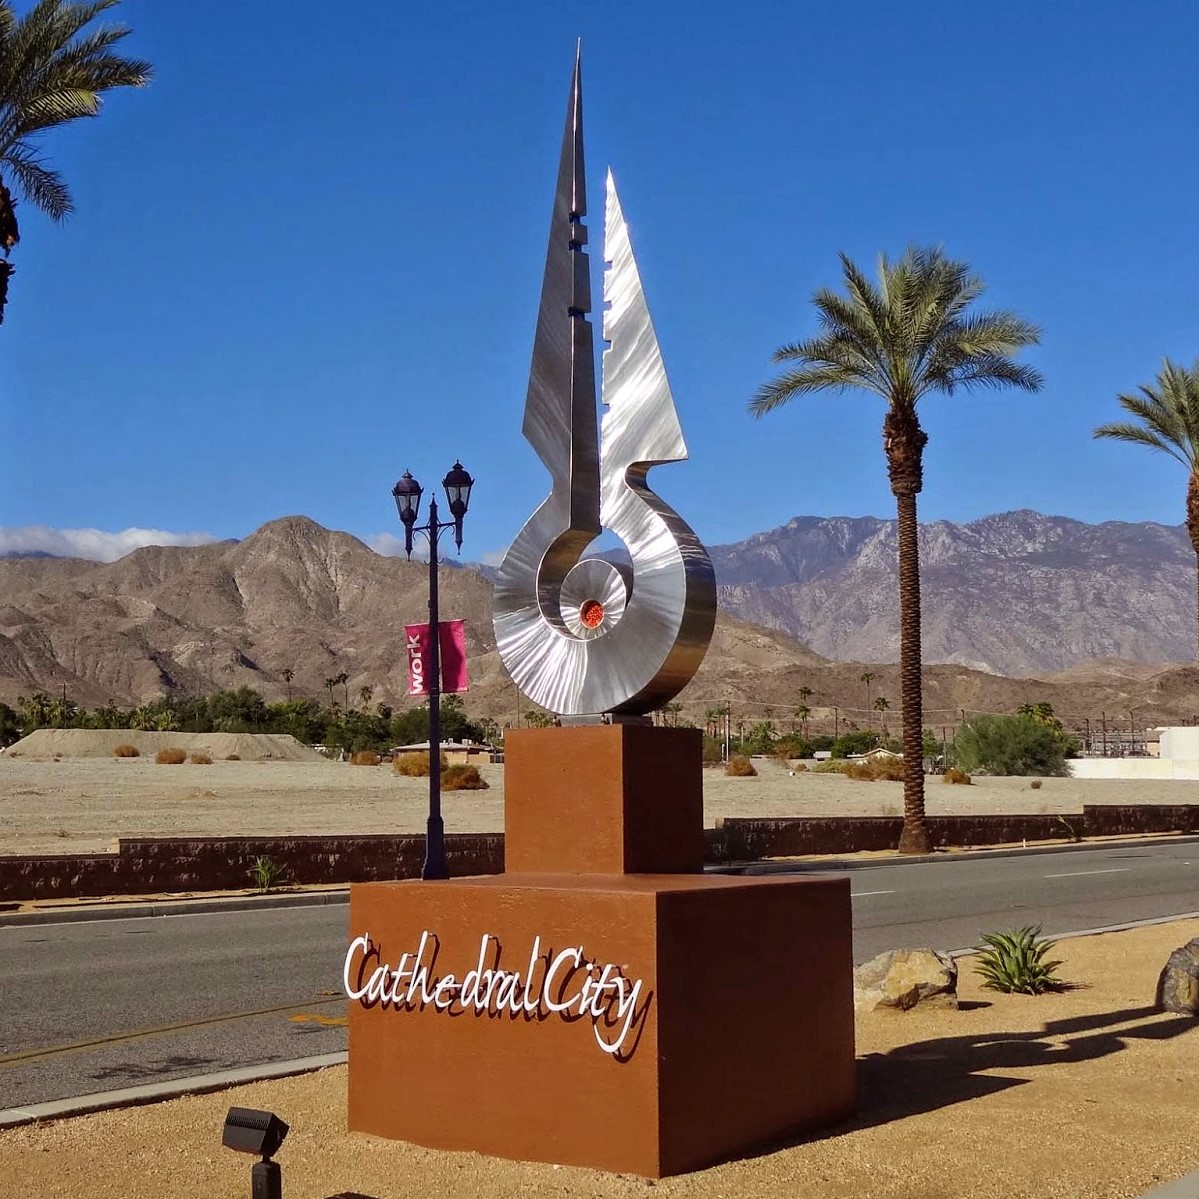 4. Cathedral City community image